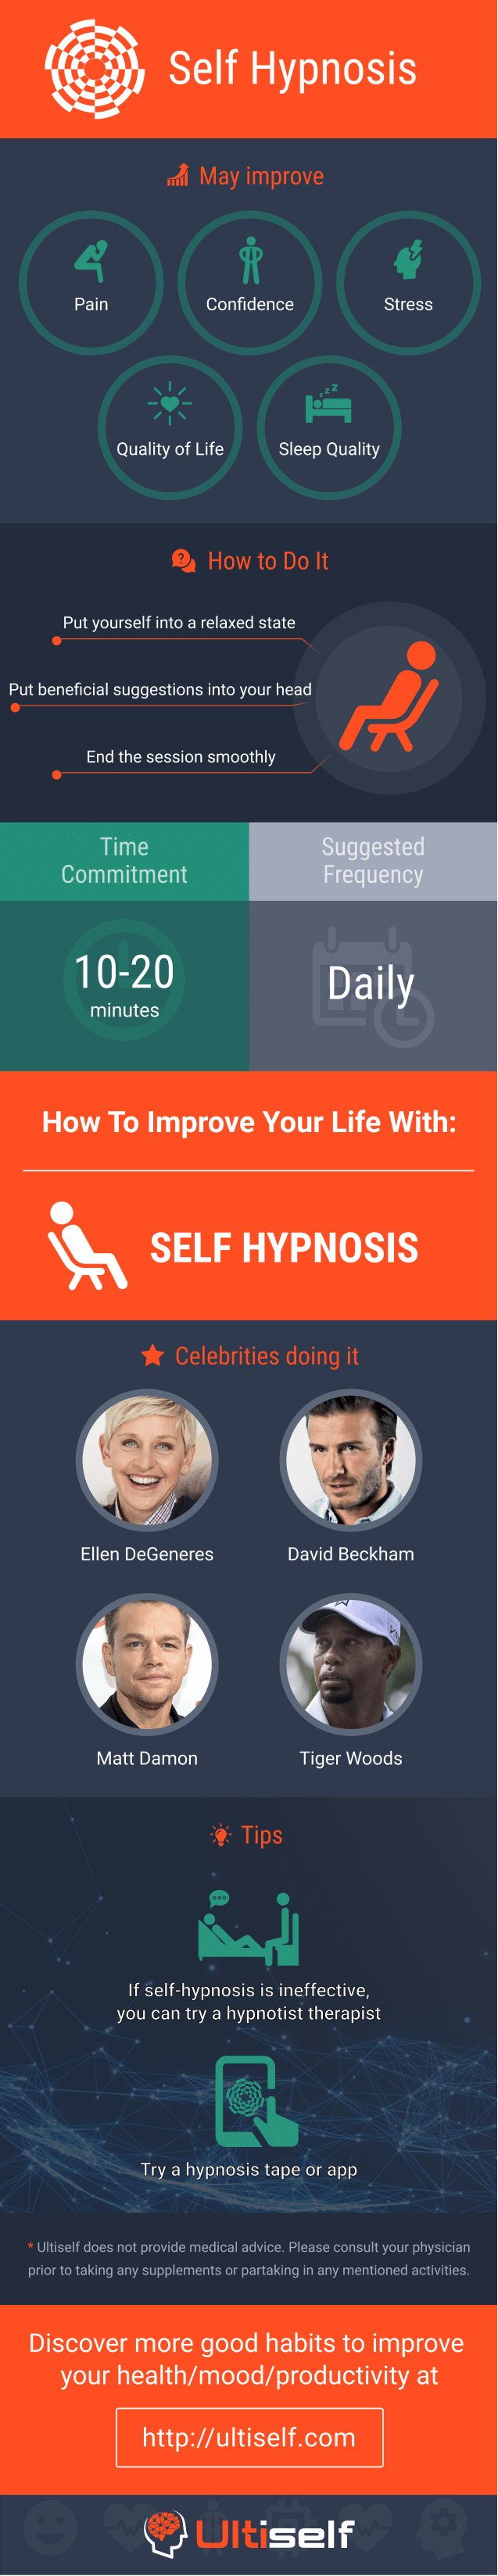 Self Hypnosis infographic